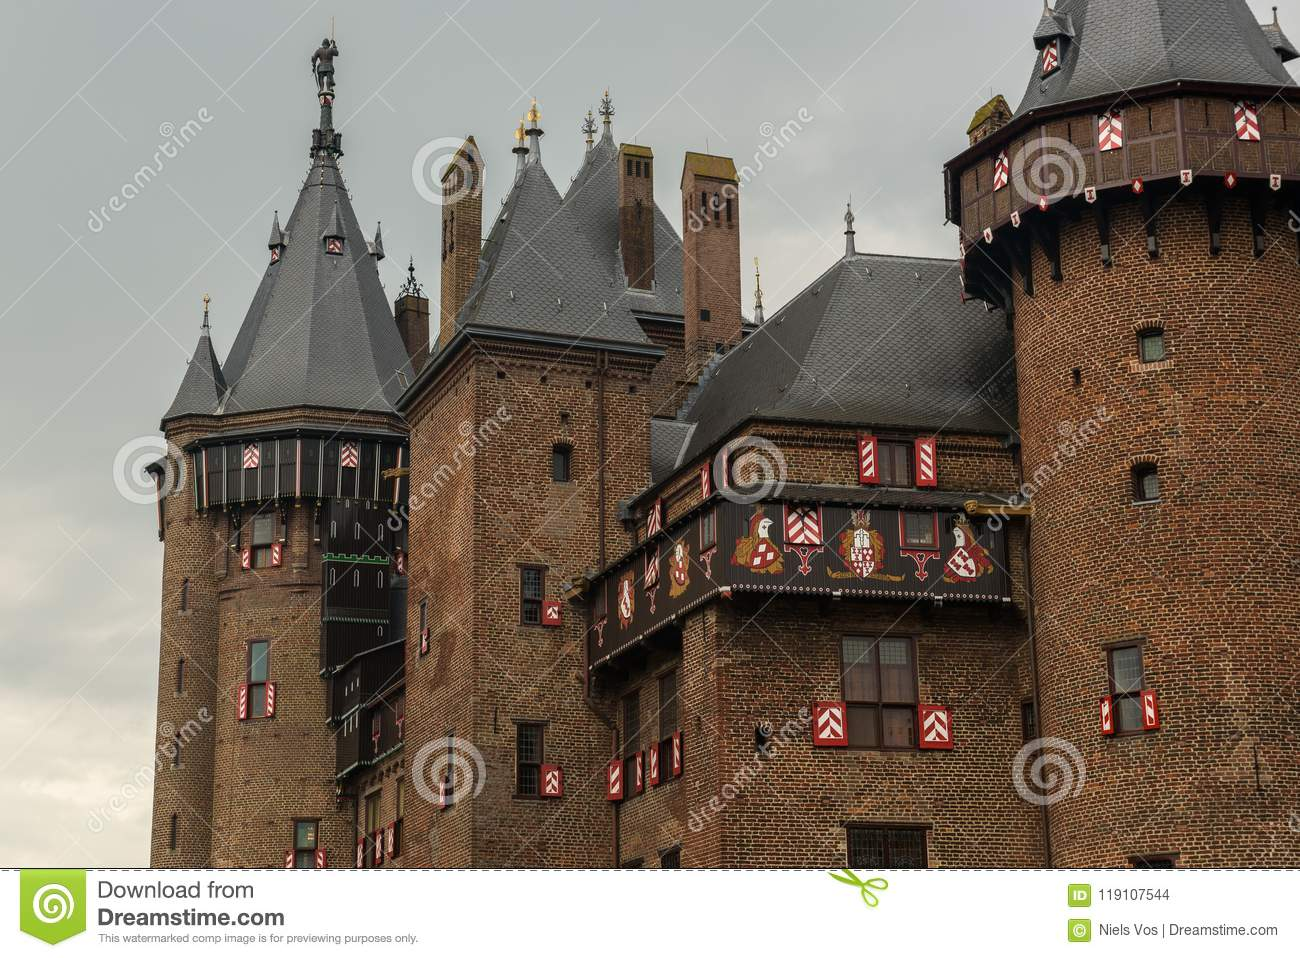 download exterior of parts of de haar castle with towers and windows in neo gothic style